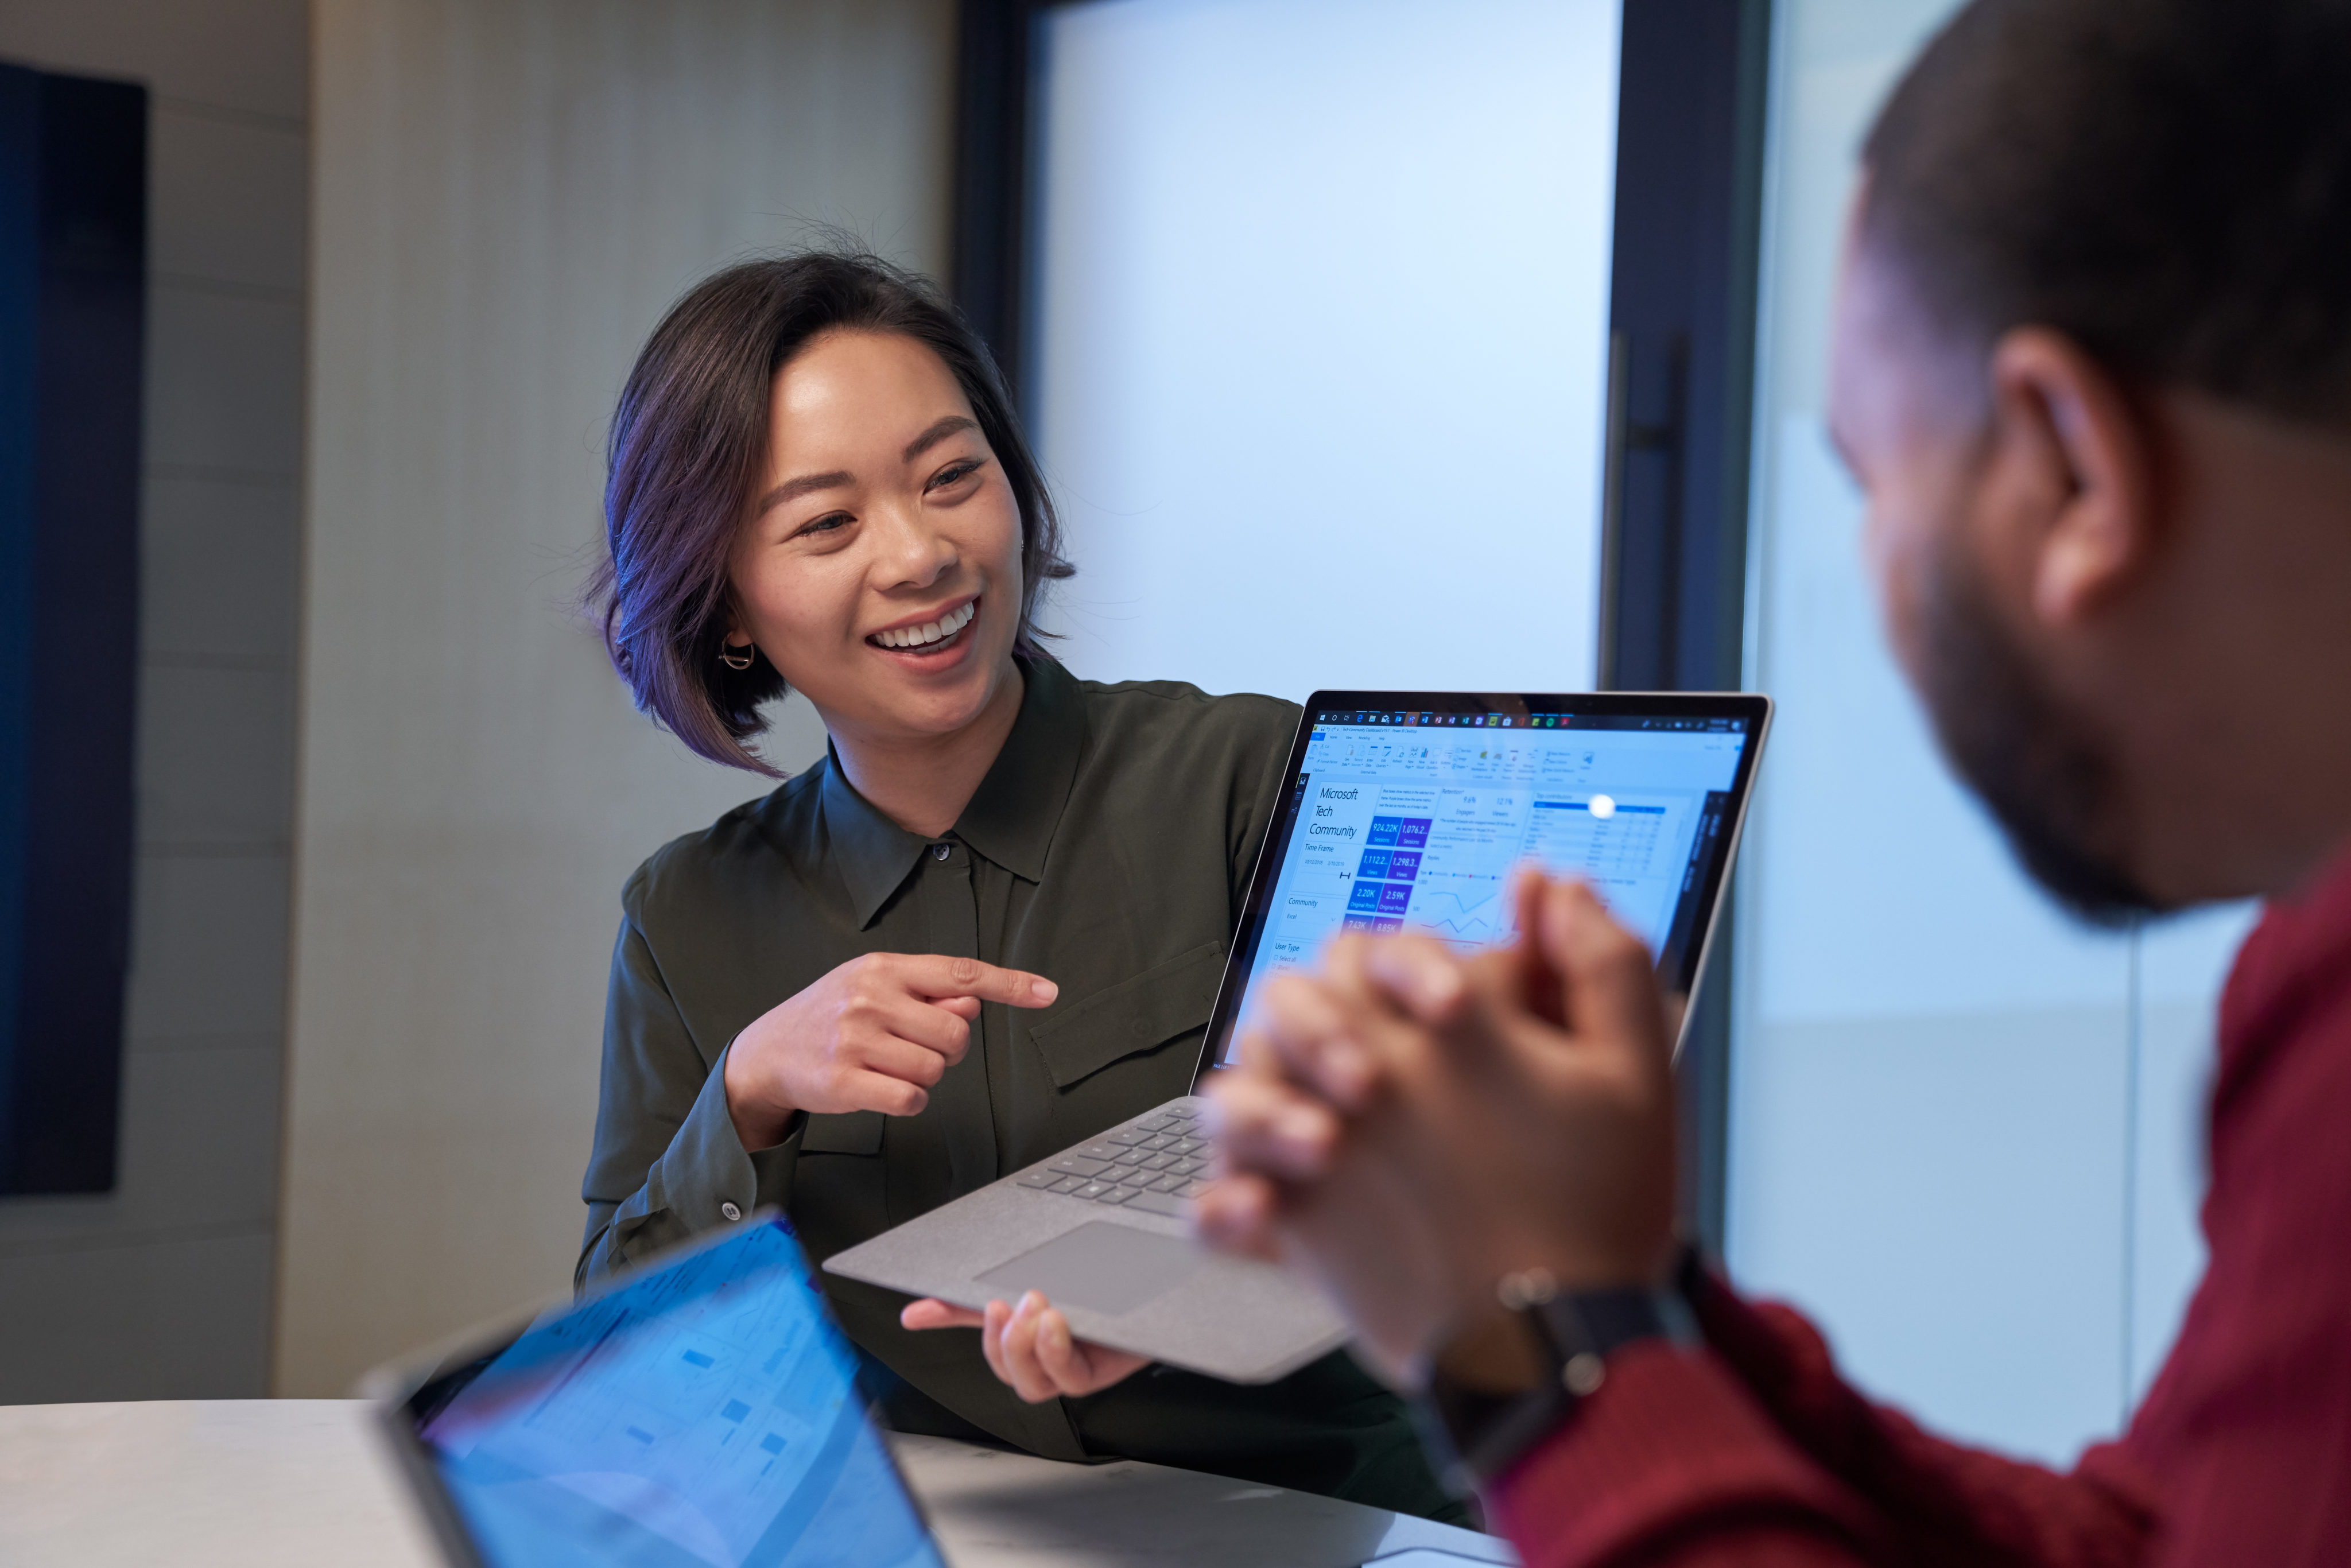 Smiling woman in a meeting room holding up a Surface laptop presenting statistics. Blurred man in foreground.